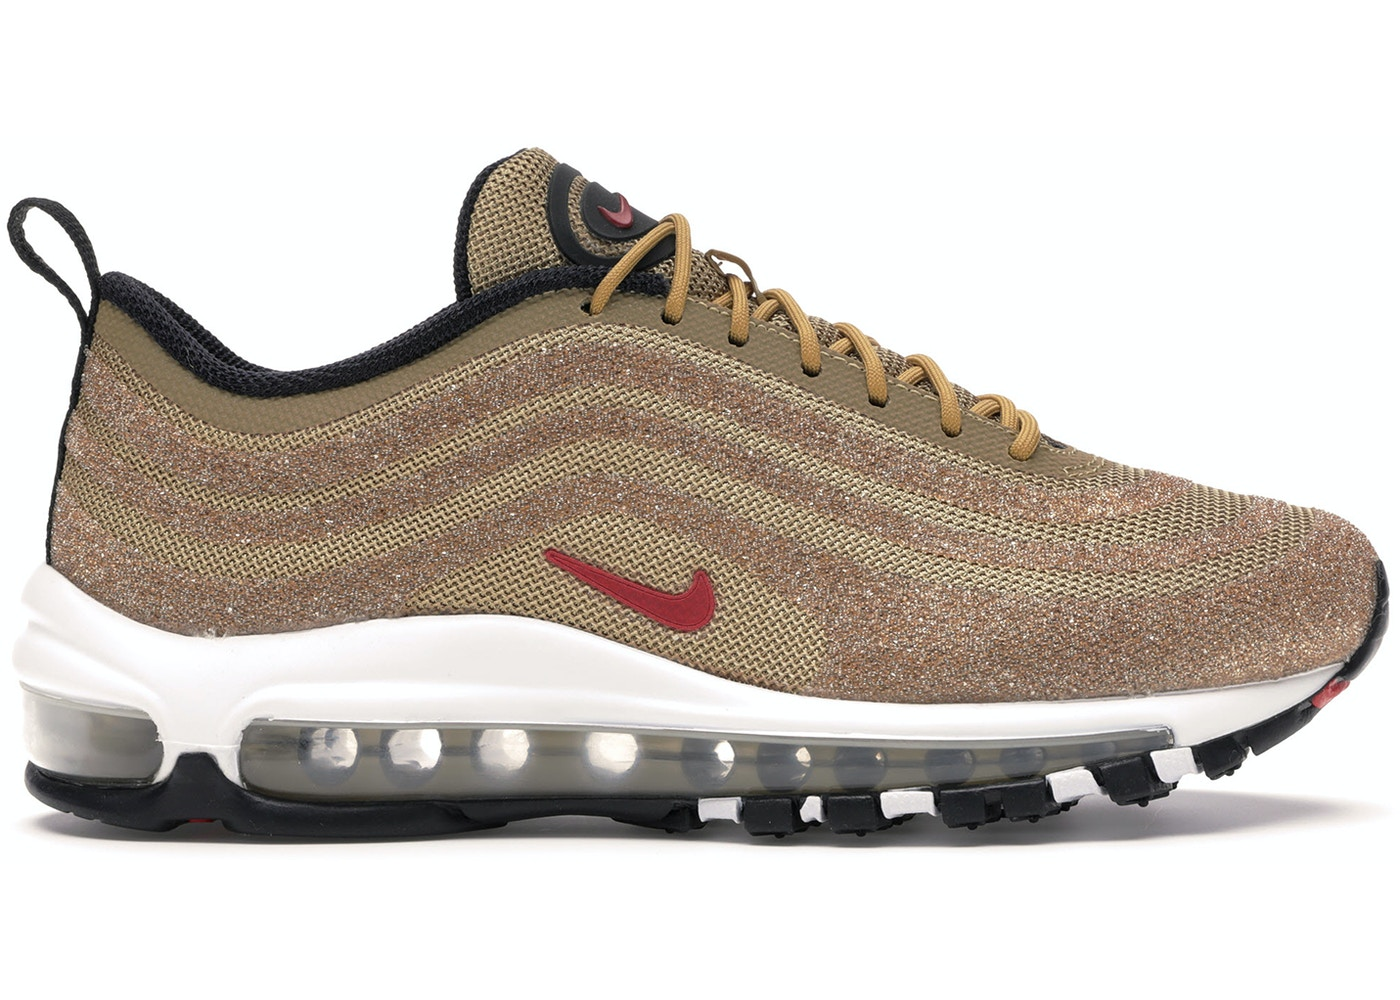 outlet store 6cf6c 090f3 Air Max 97 LX Swarovski Gold (W)